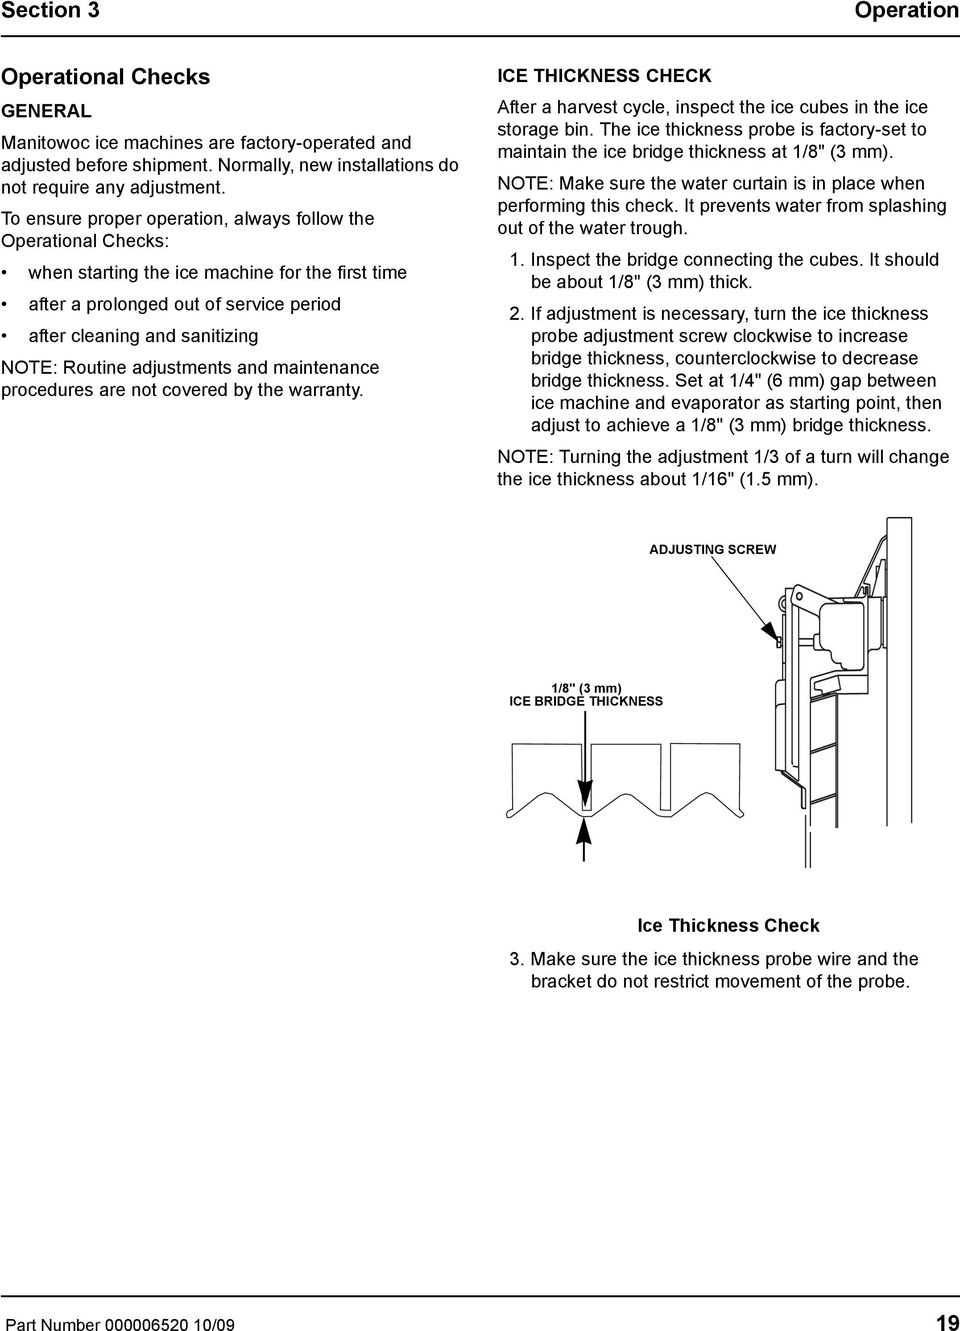 ice maker wiring diagrams, copeland wiring diagrams, manitowoc ice machines filters cg-5 20s, manitowoc q450, ice box wiring diagrams, walk in cooler wiring diagrams, compressor wiring diagrams, hoshizaki wiring diagrams, pepsi machine wiring diagrams, on manitowoc ice machine wiring diagrams model s